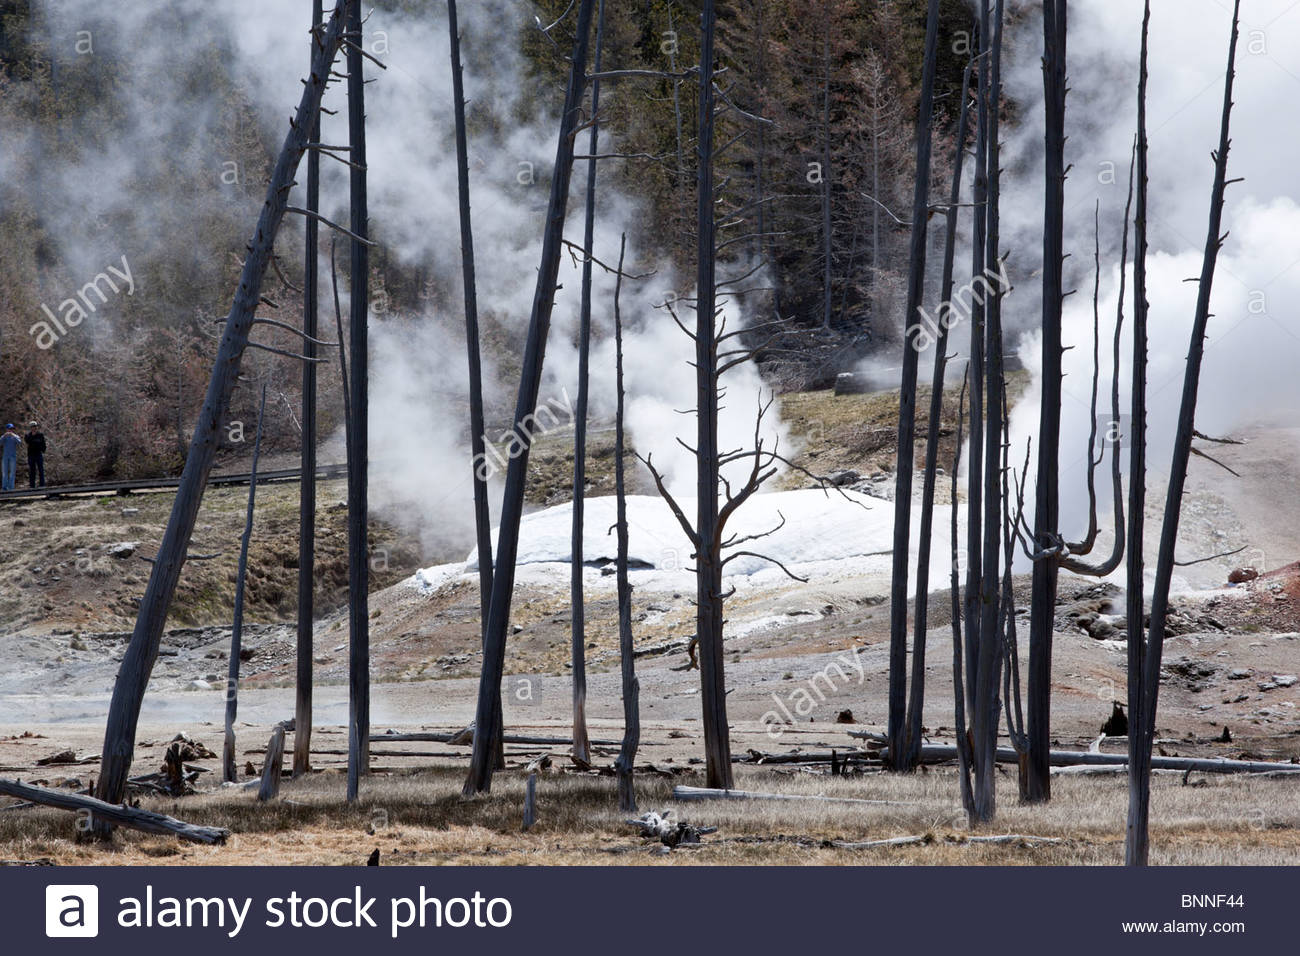 Dead Trees and Black Growler Steam Vent at Norris Geyser Basin, Yellowstone National Park, Wyoming - Stock Image